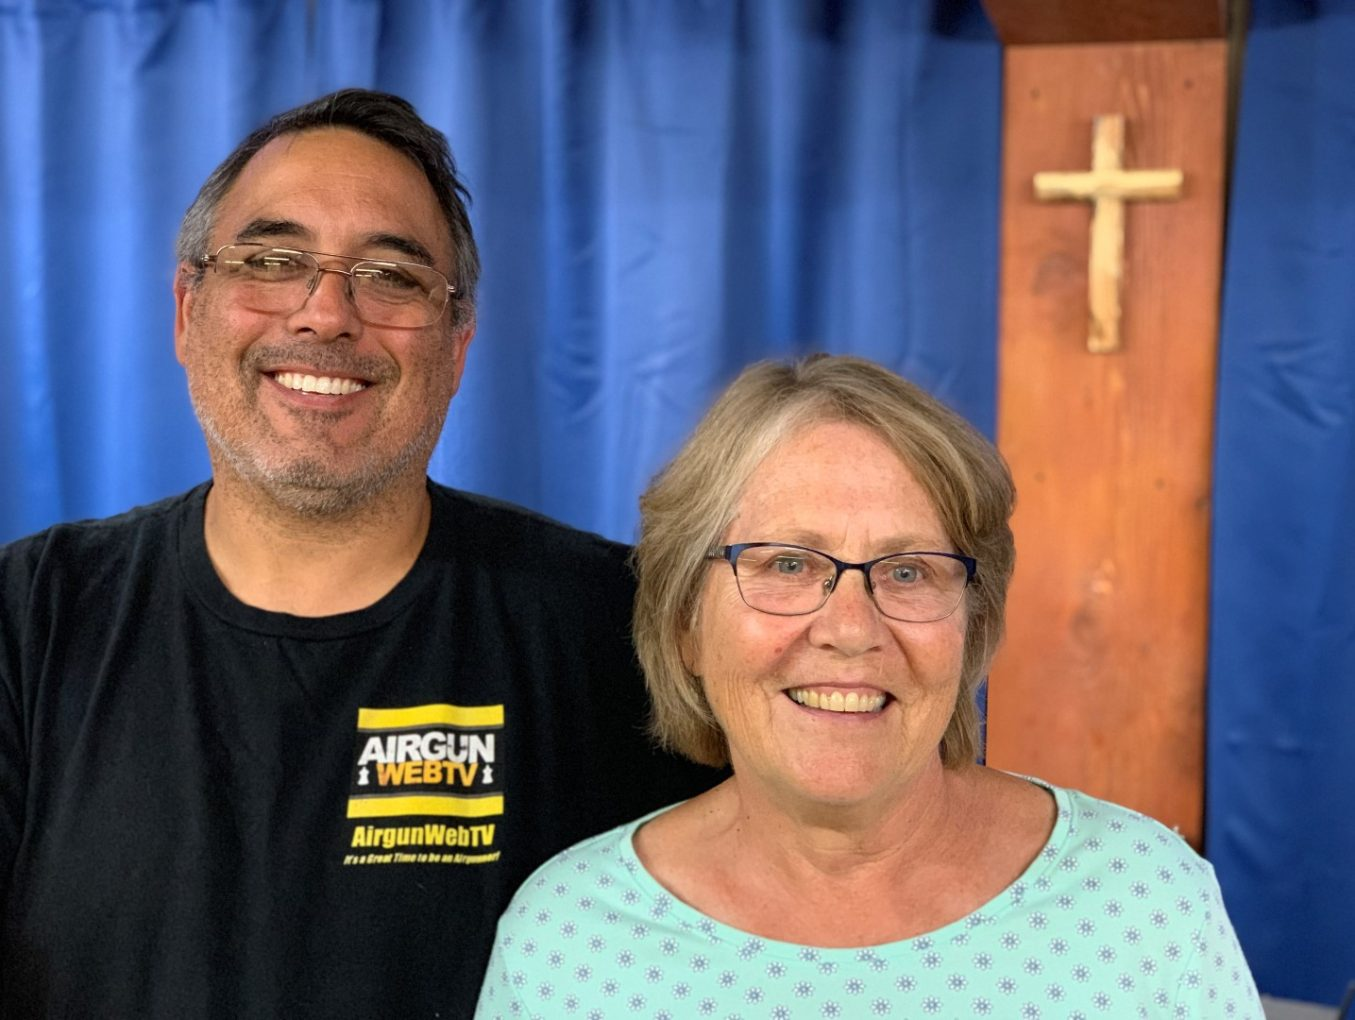 Texas Wednesday Service 2019-07-24